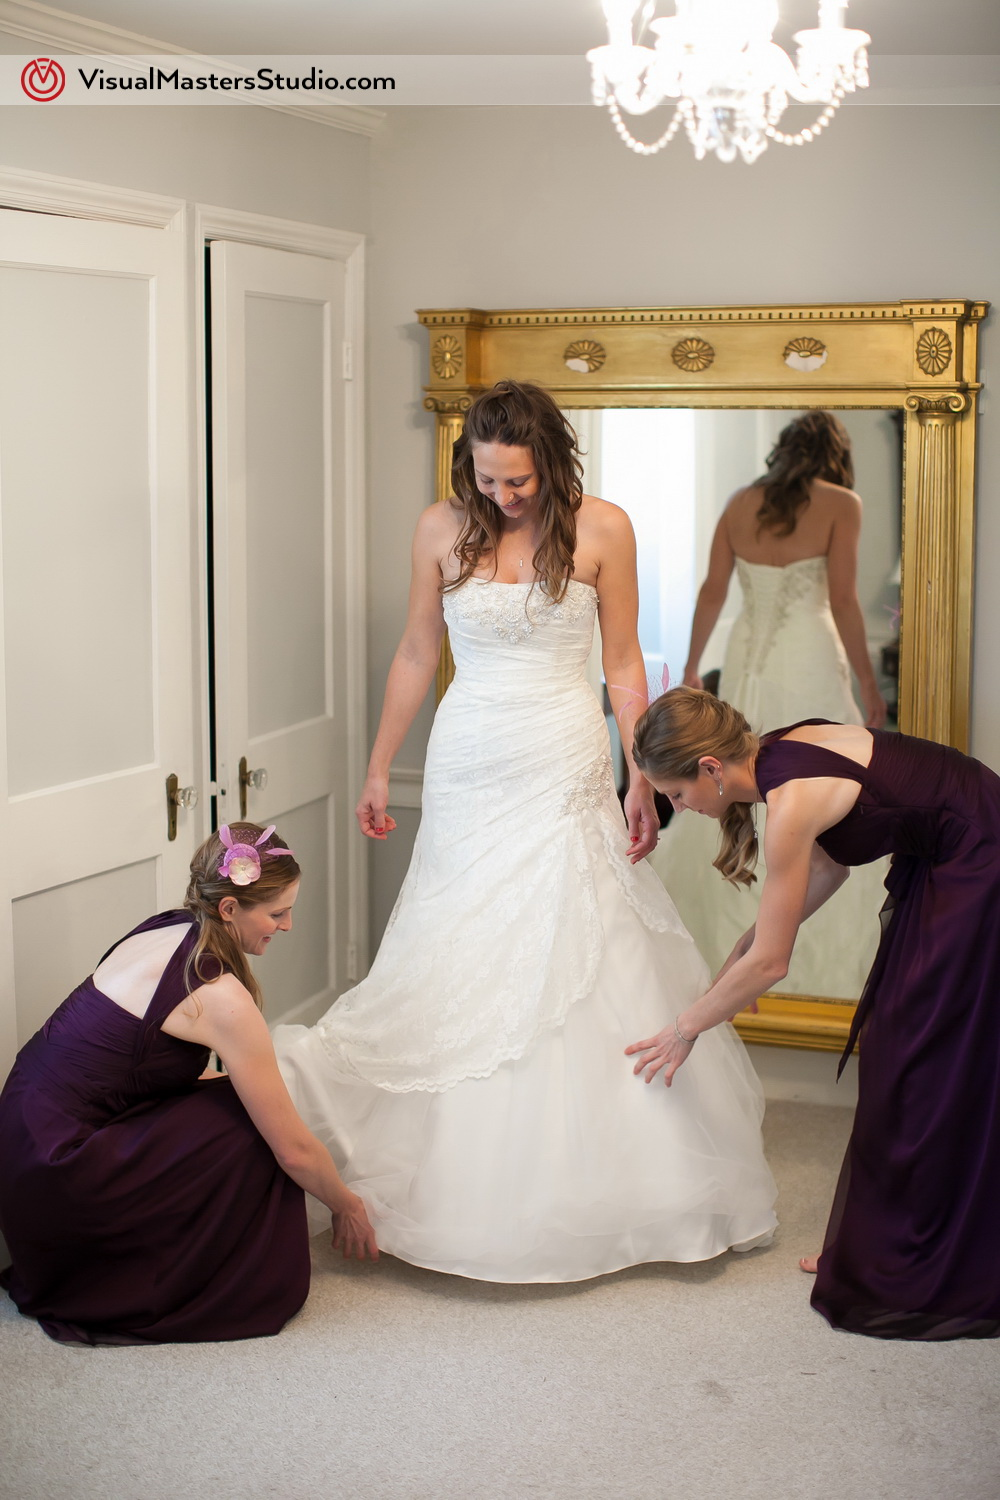 Bride Getting Ready at The Inn at Fernbrook Farms by Visual Masters